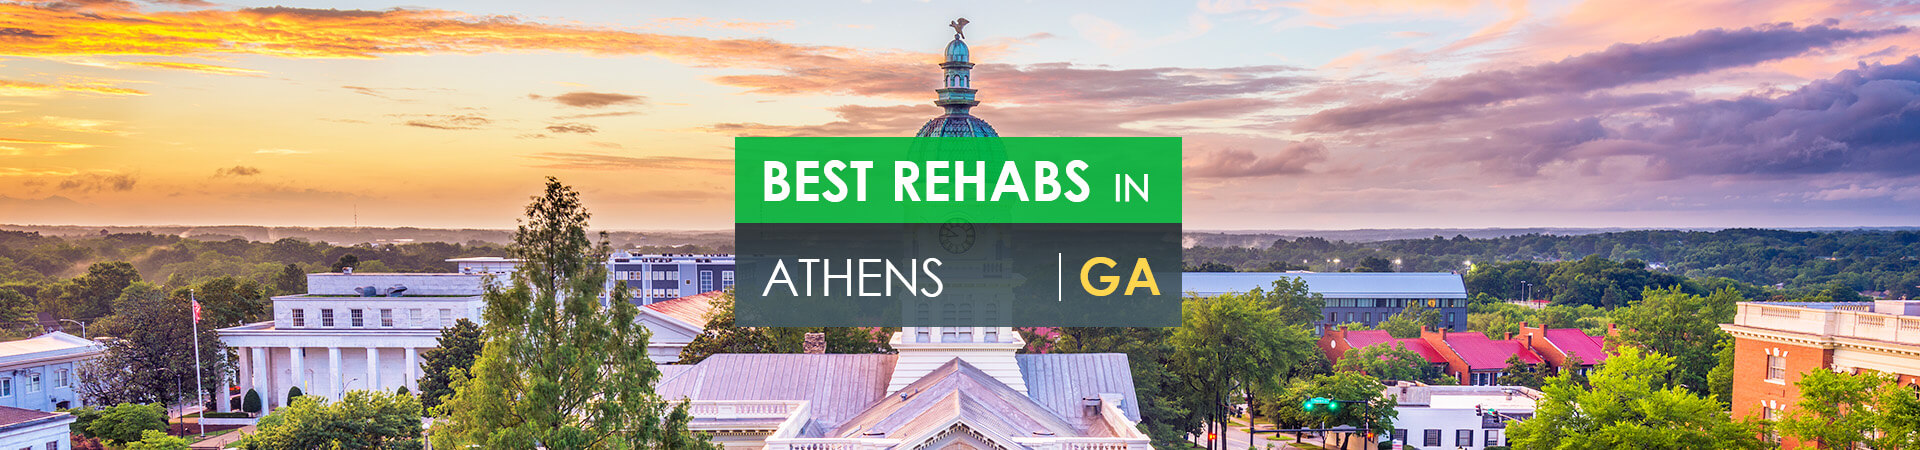 Best rehabs in Athens, GA